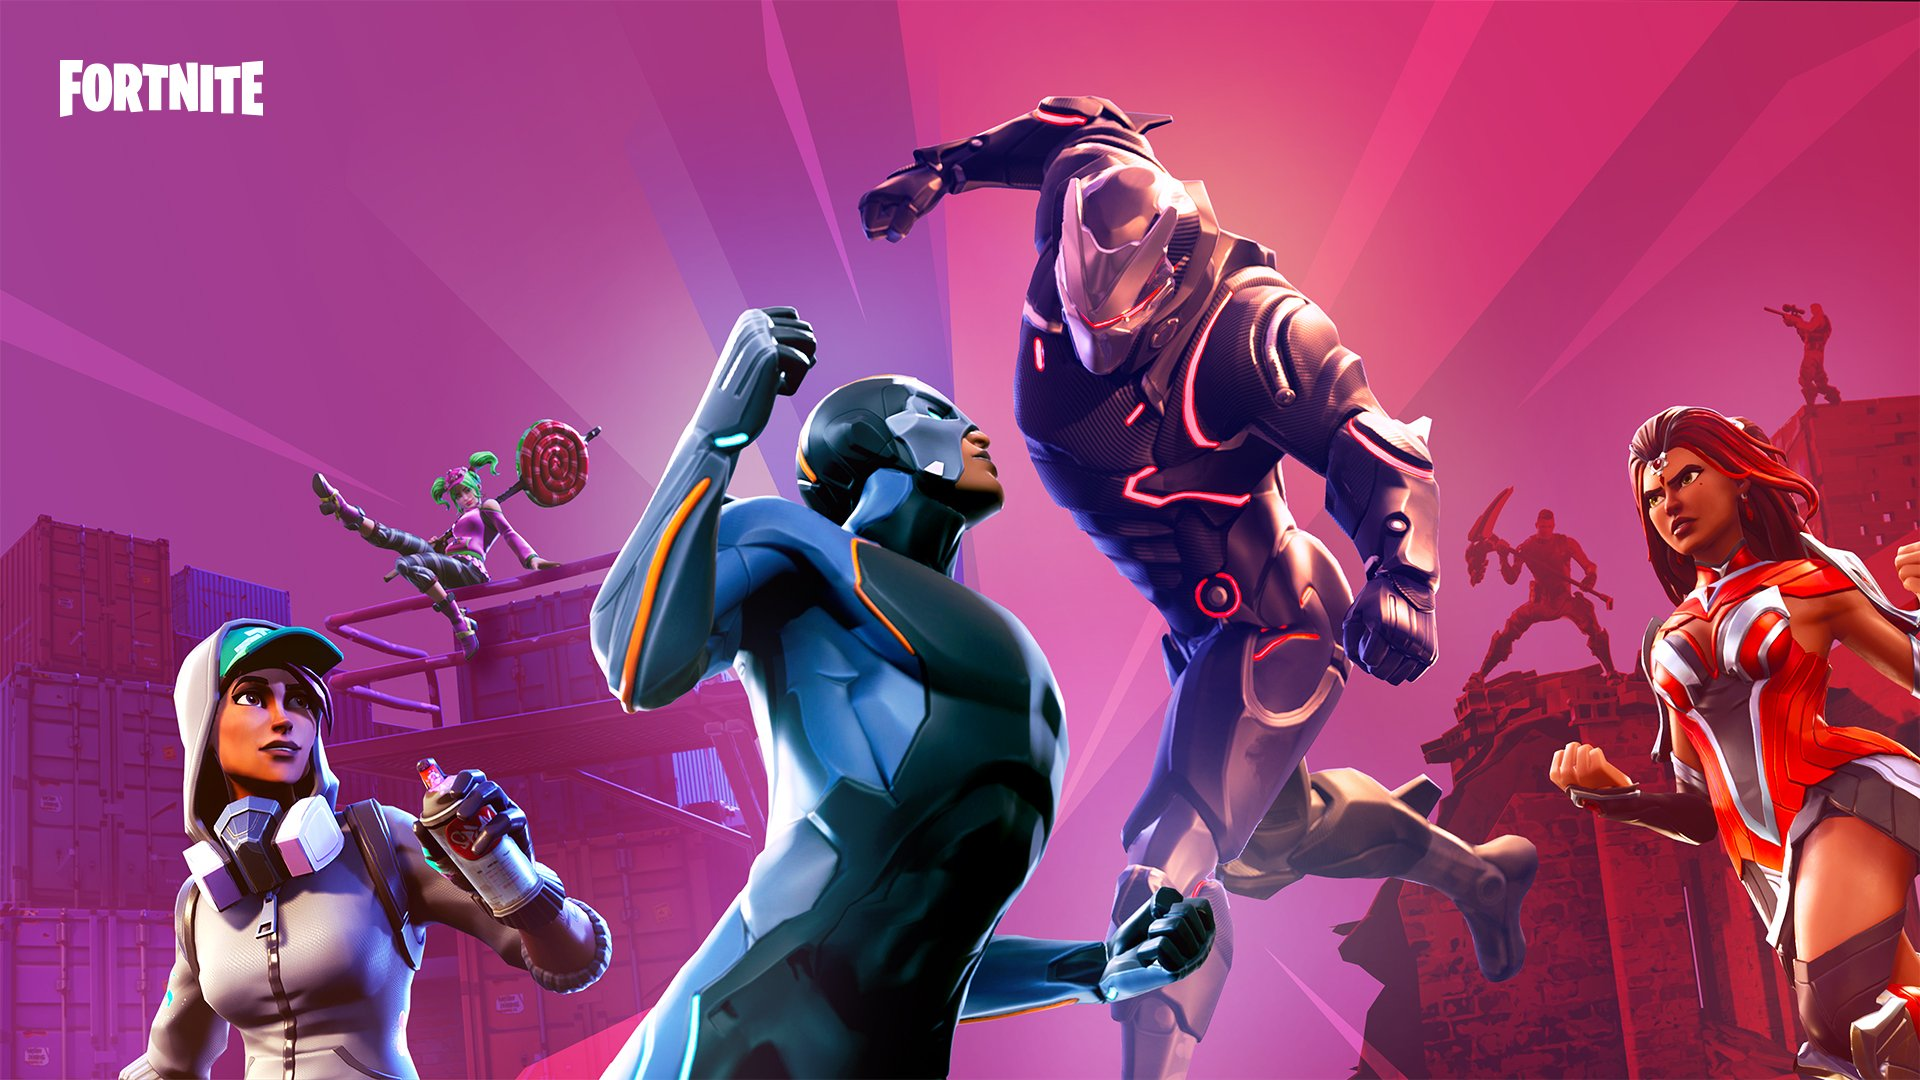 Epic Games Hit With Class Action Suit Over Fortnite Security Breach Gamedaily Biz